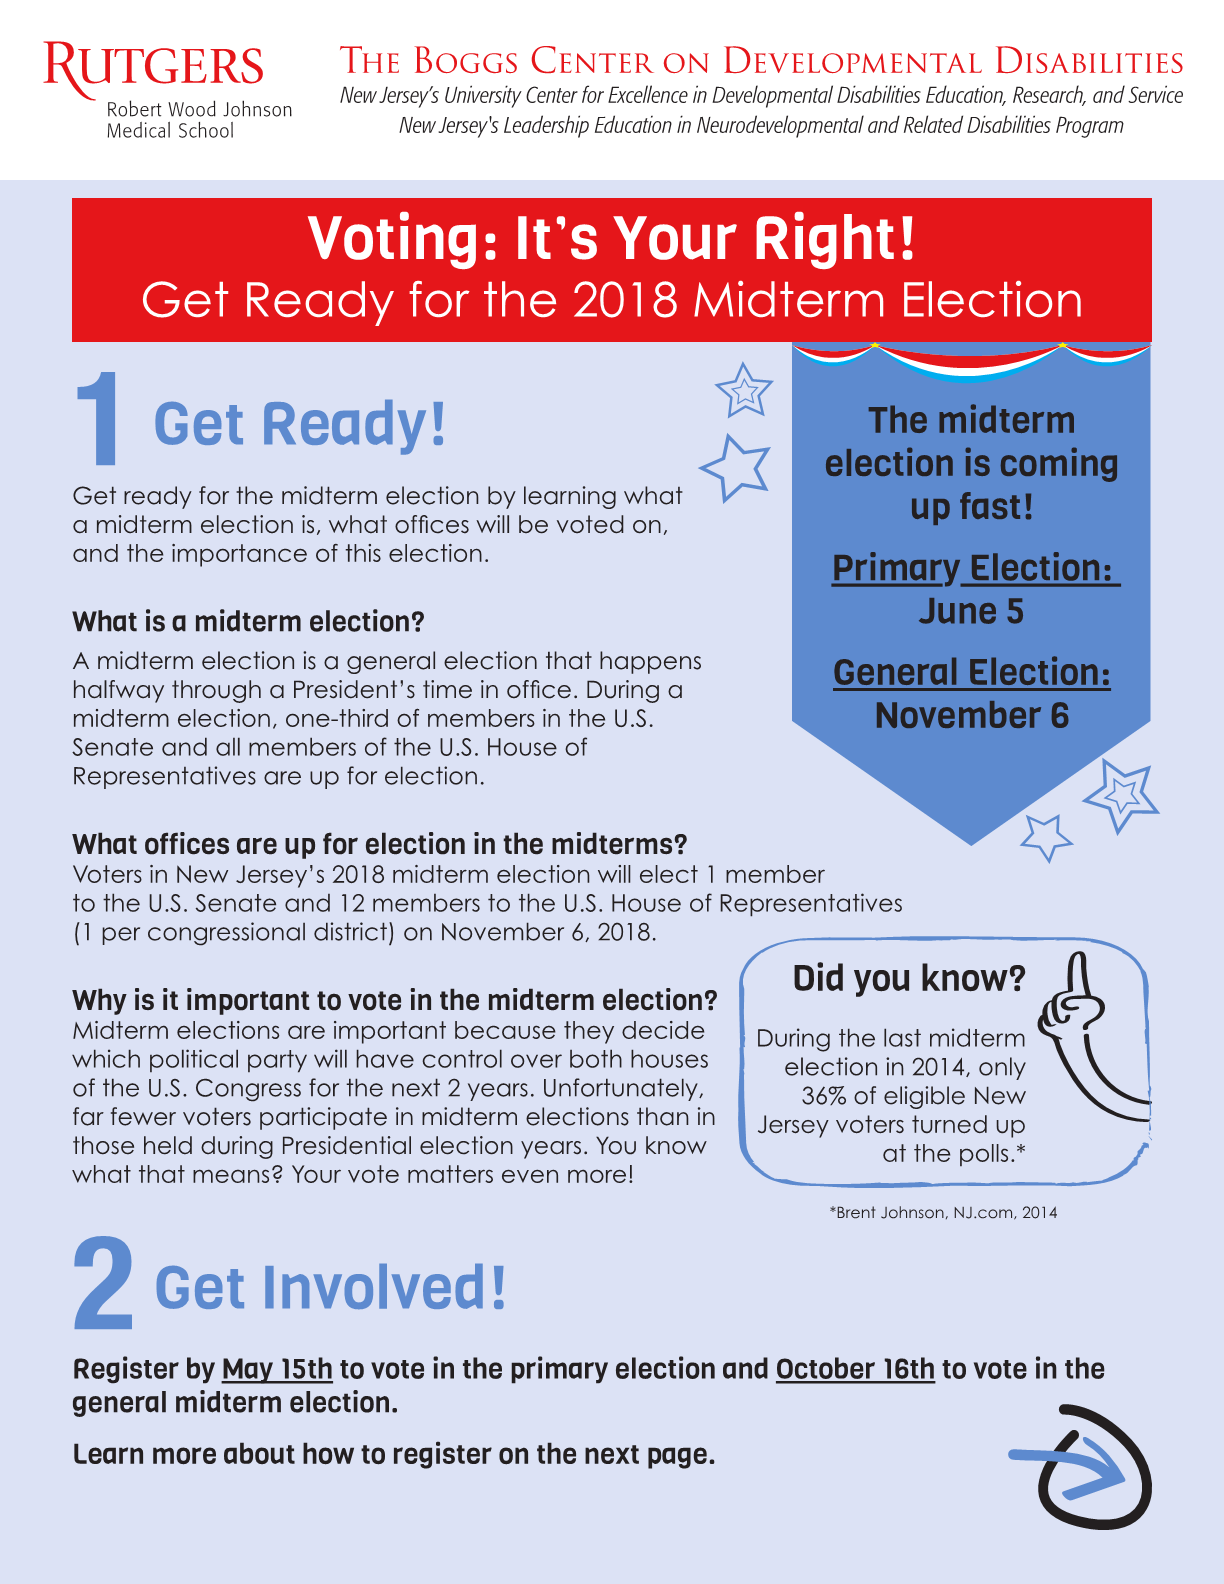 Voting: It's Your Right! Get Ready for the 2018 Midterm Election